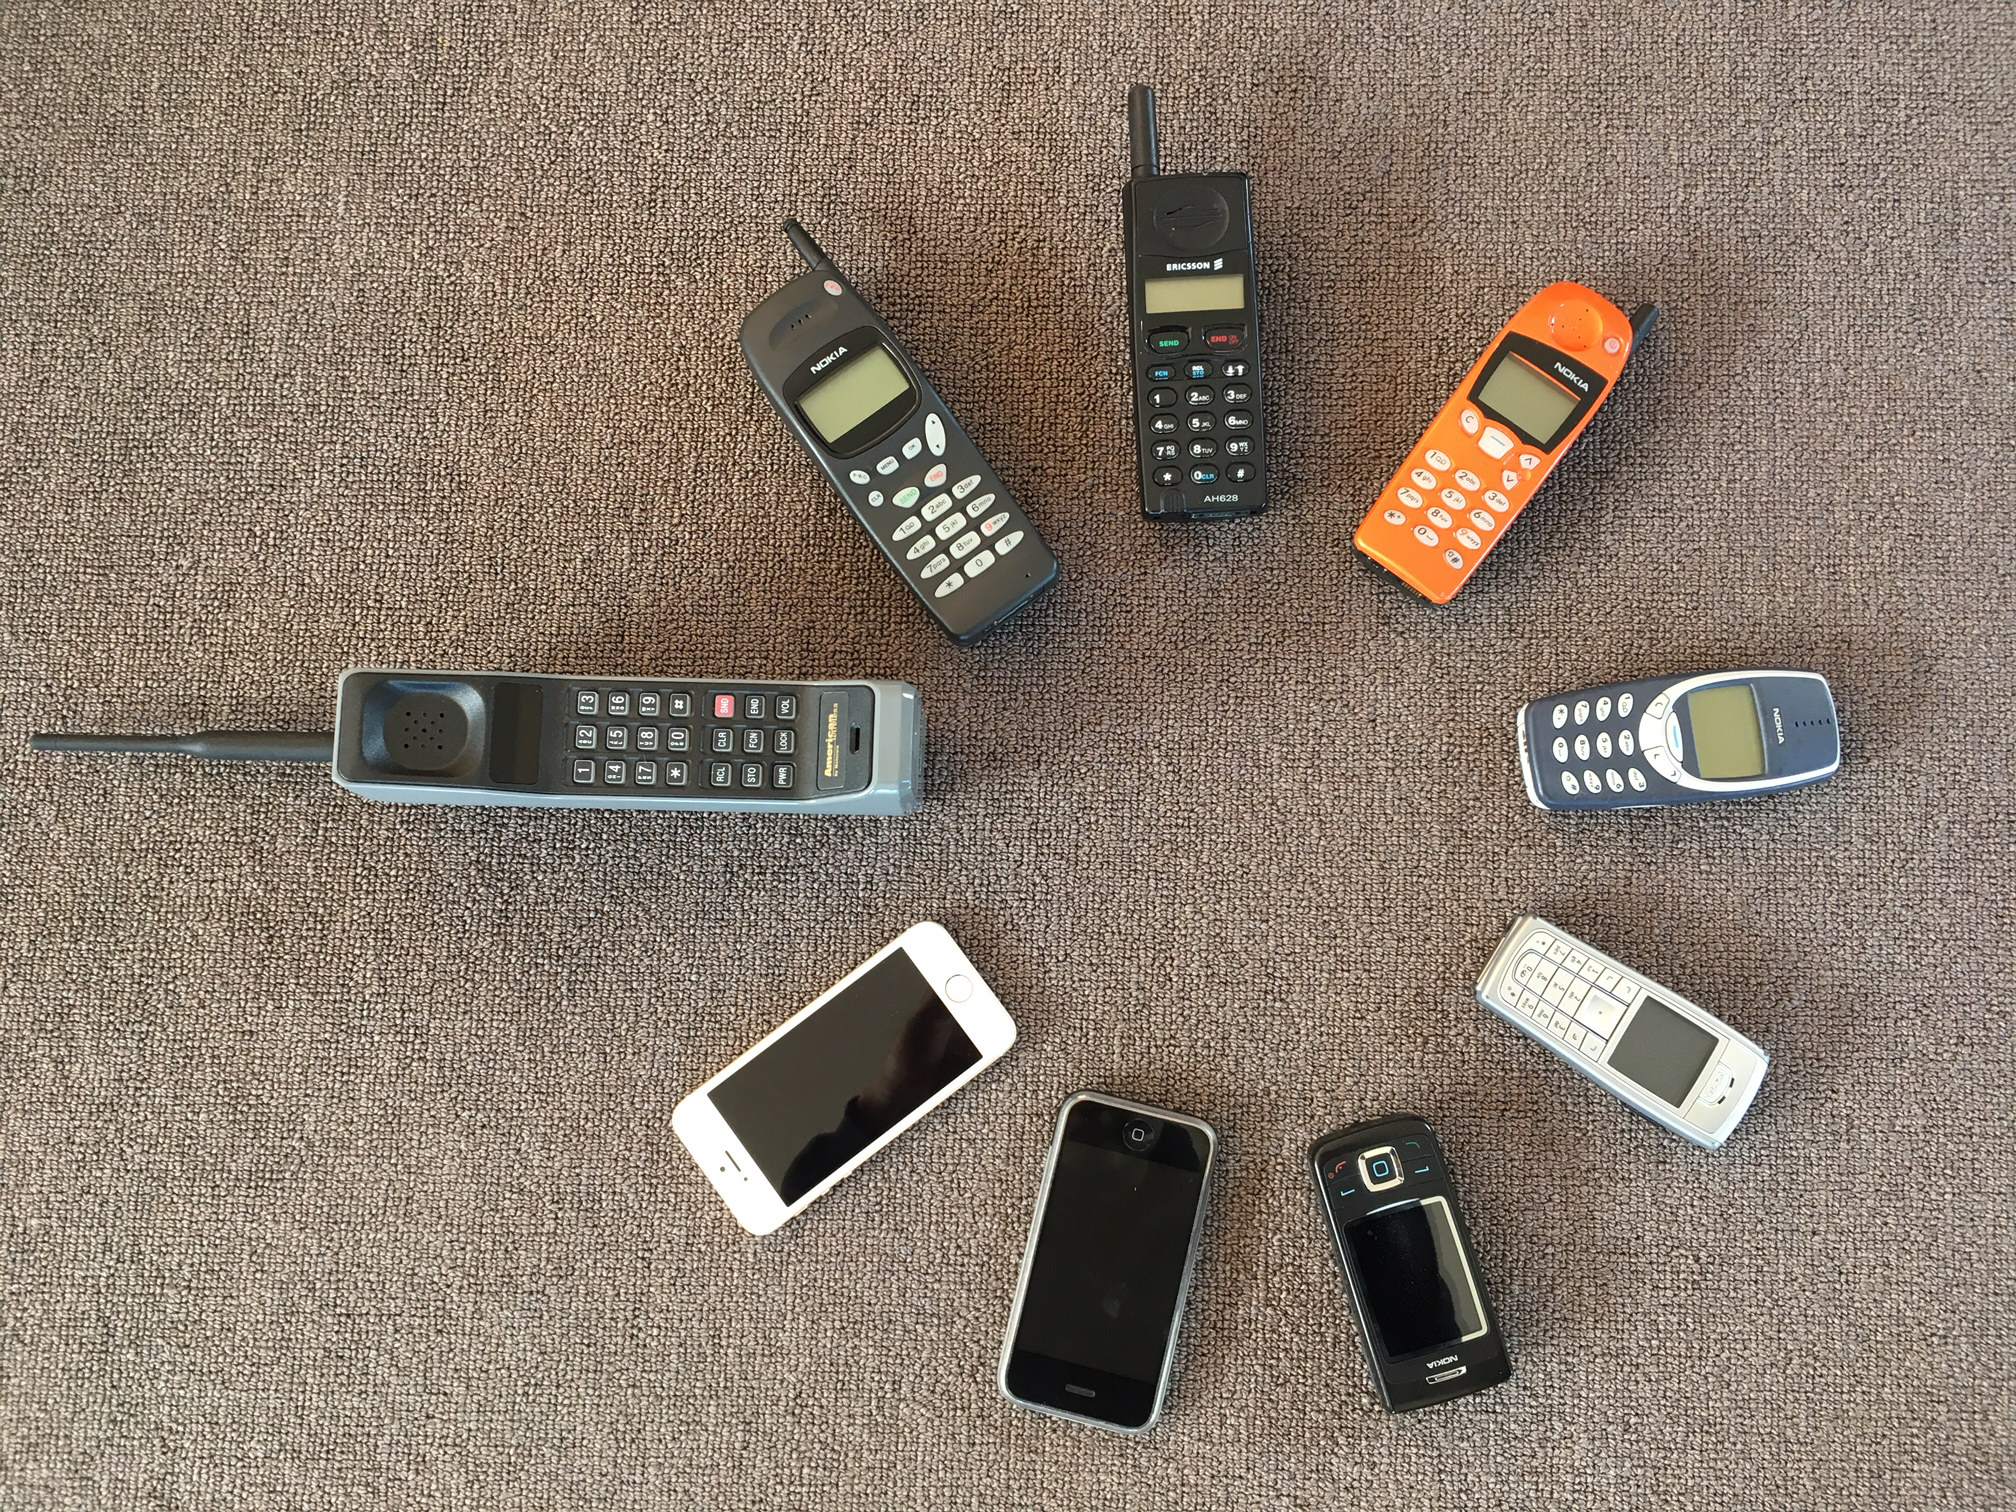 Just some of the phones we have used over the years.